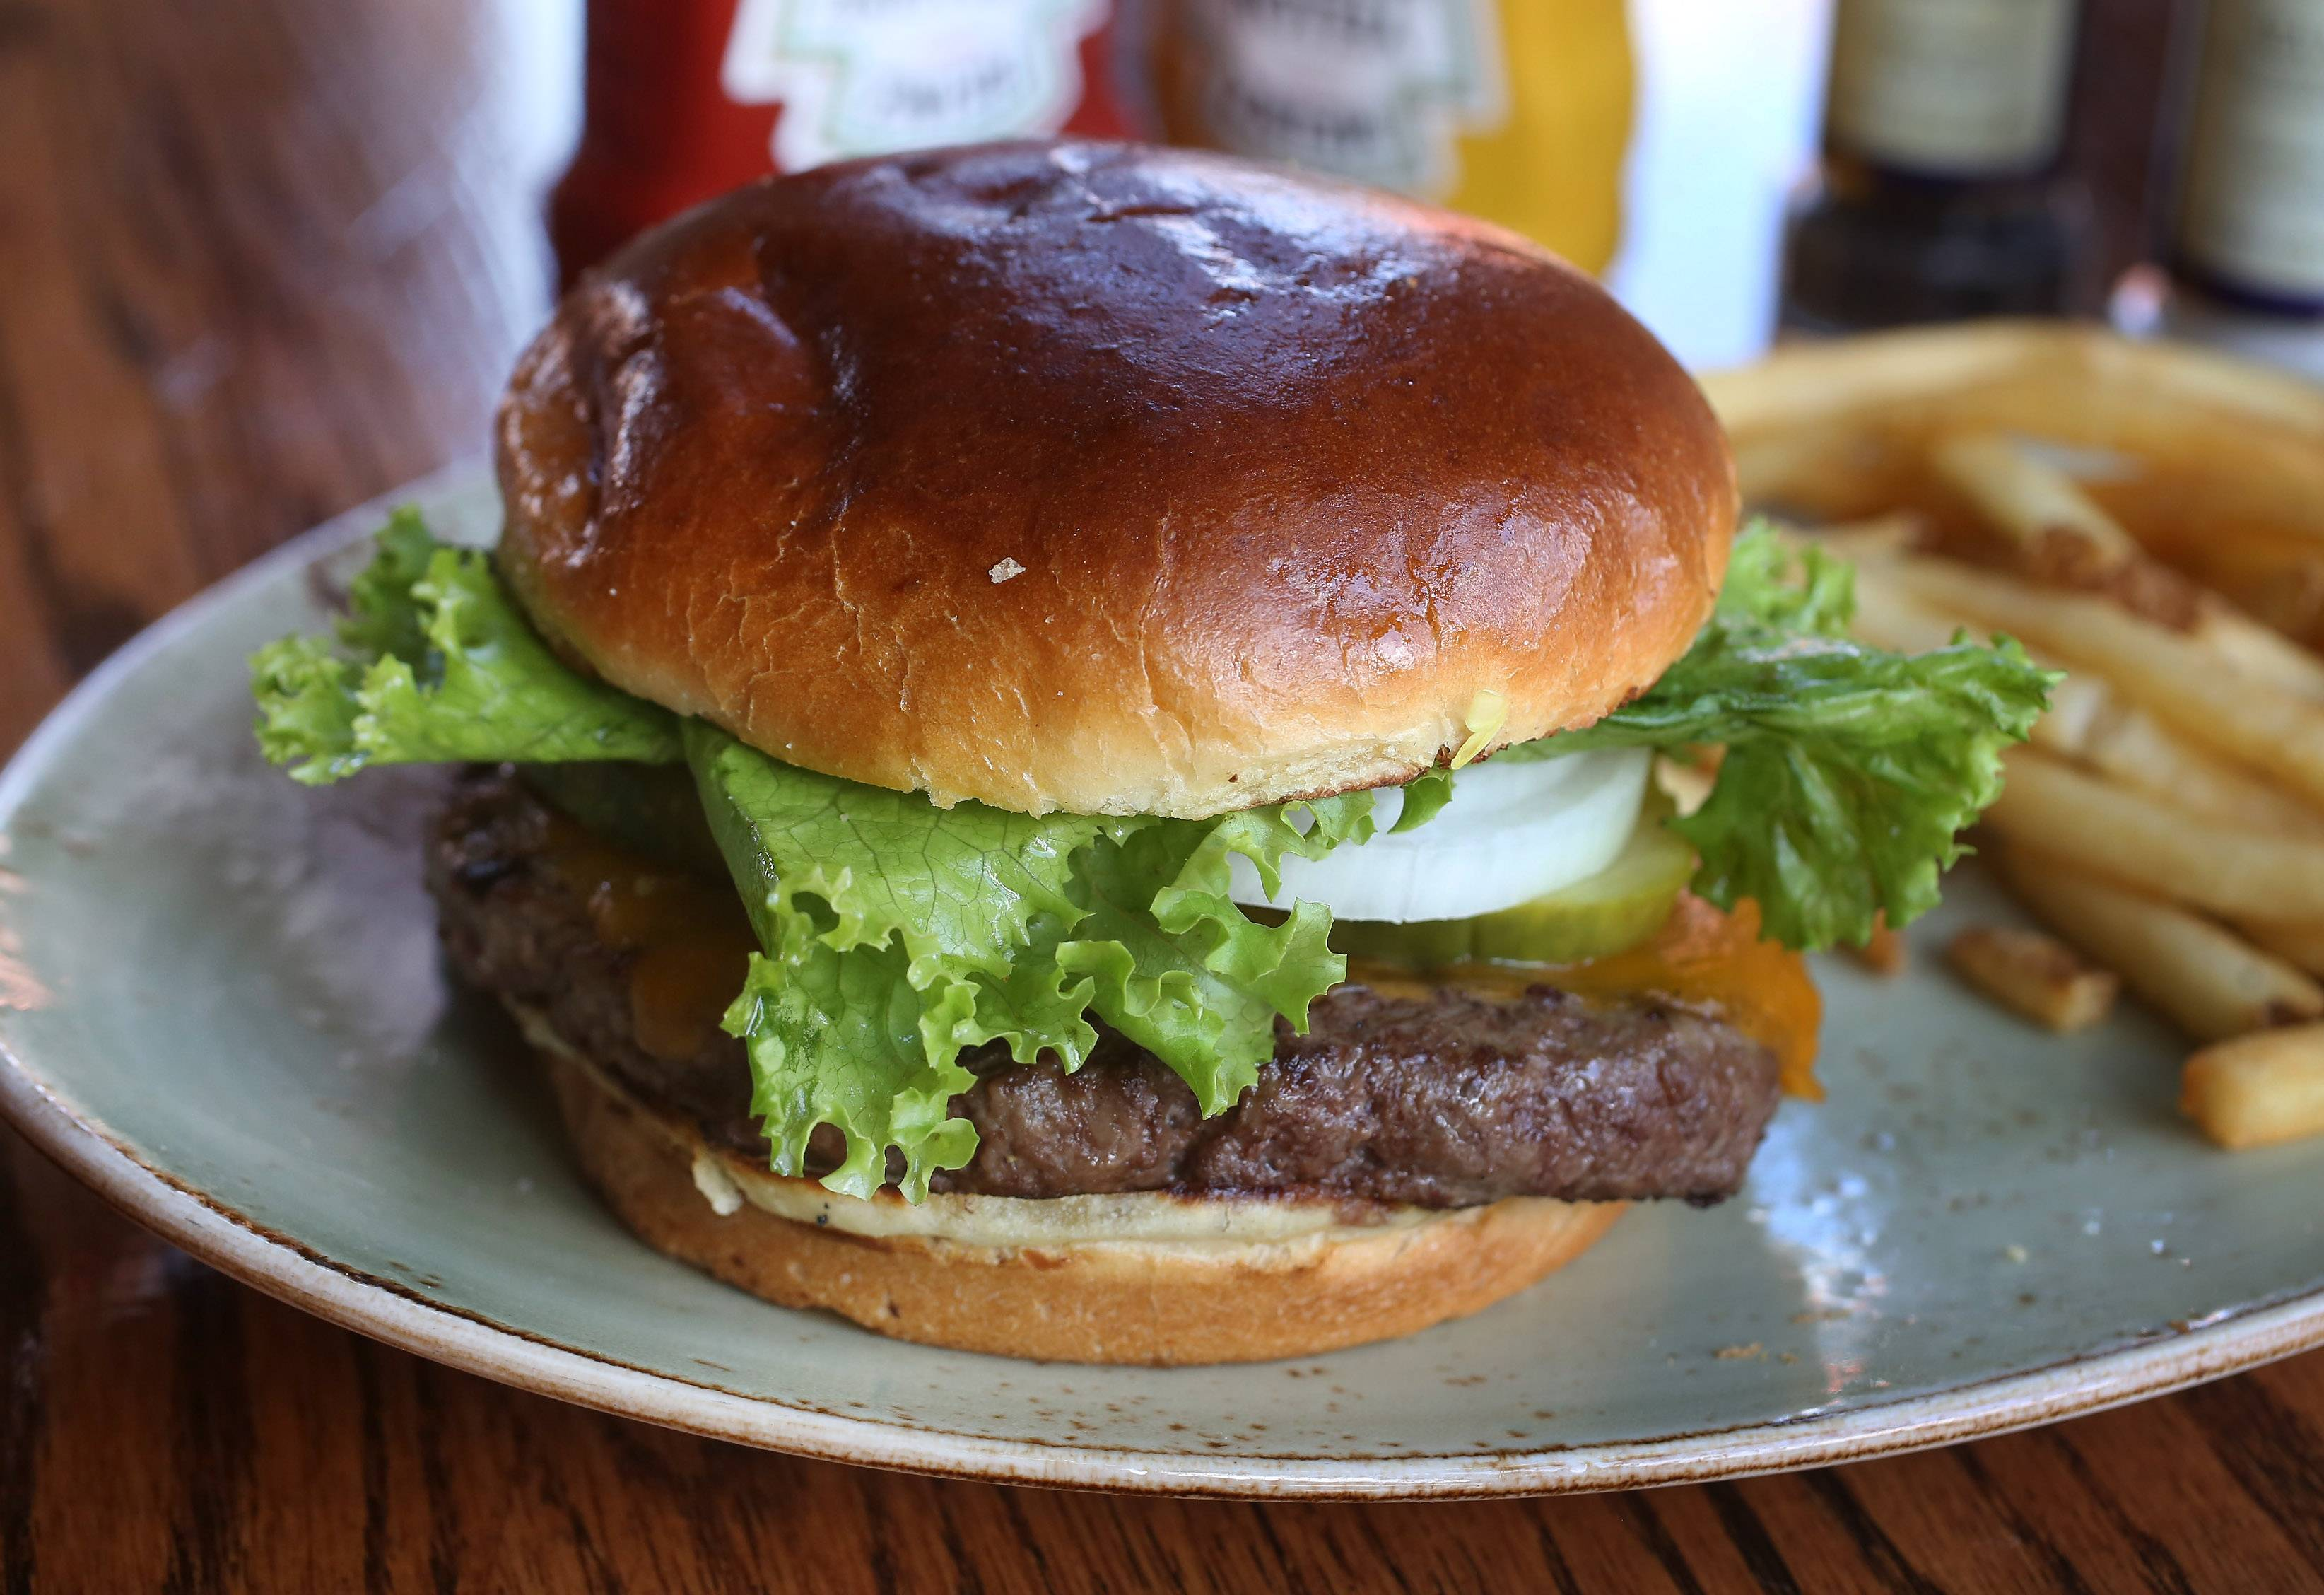 The Original Mickey Burger is just one of many burger options at Mickey Finn's in Libertyville.